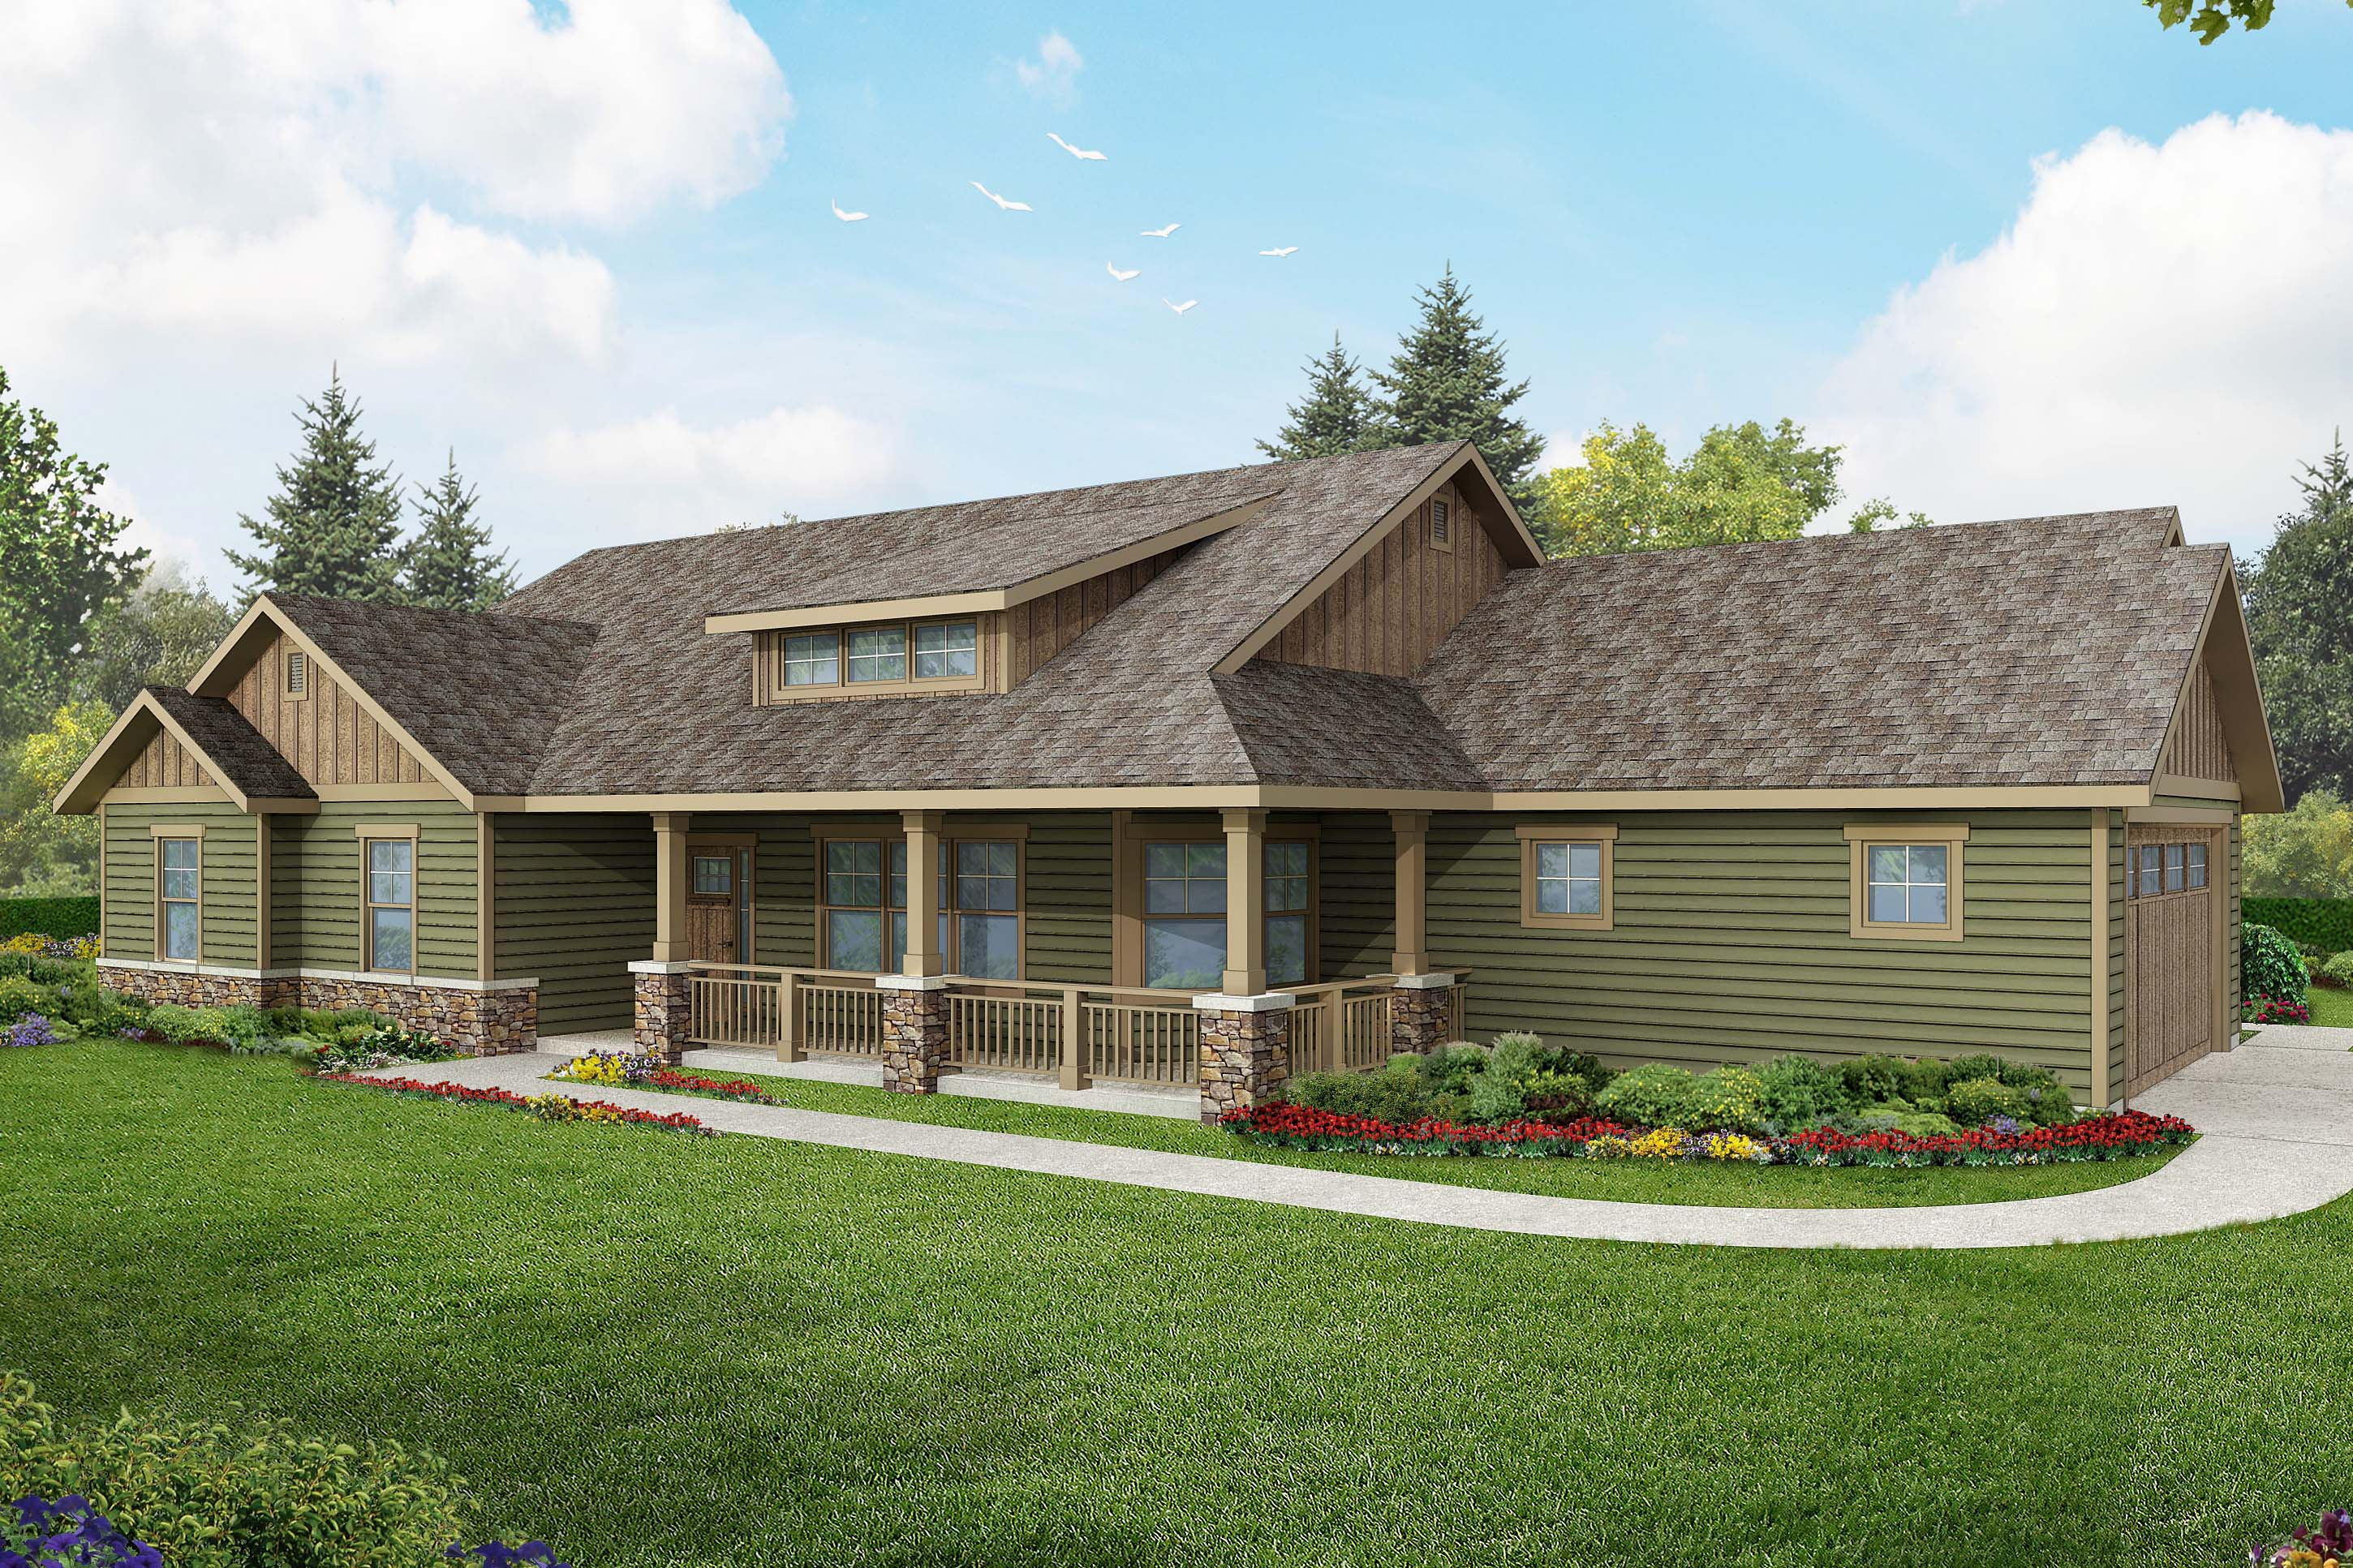 ranch_house_plan_brightheart_10 610_front